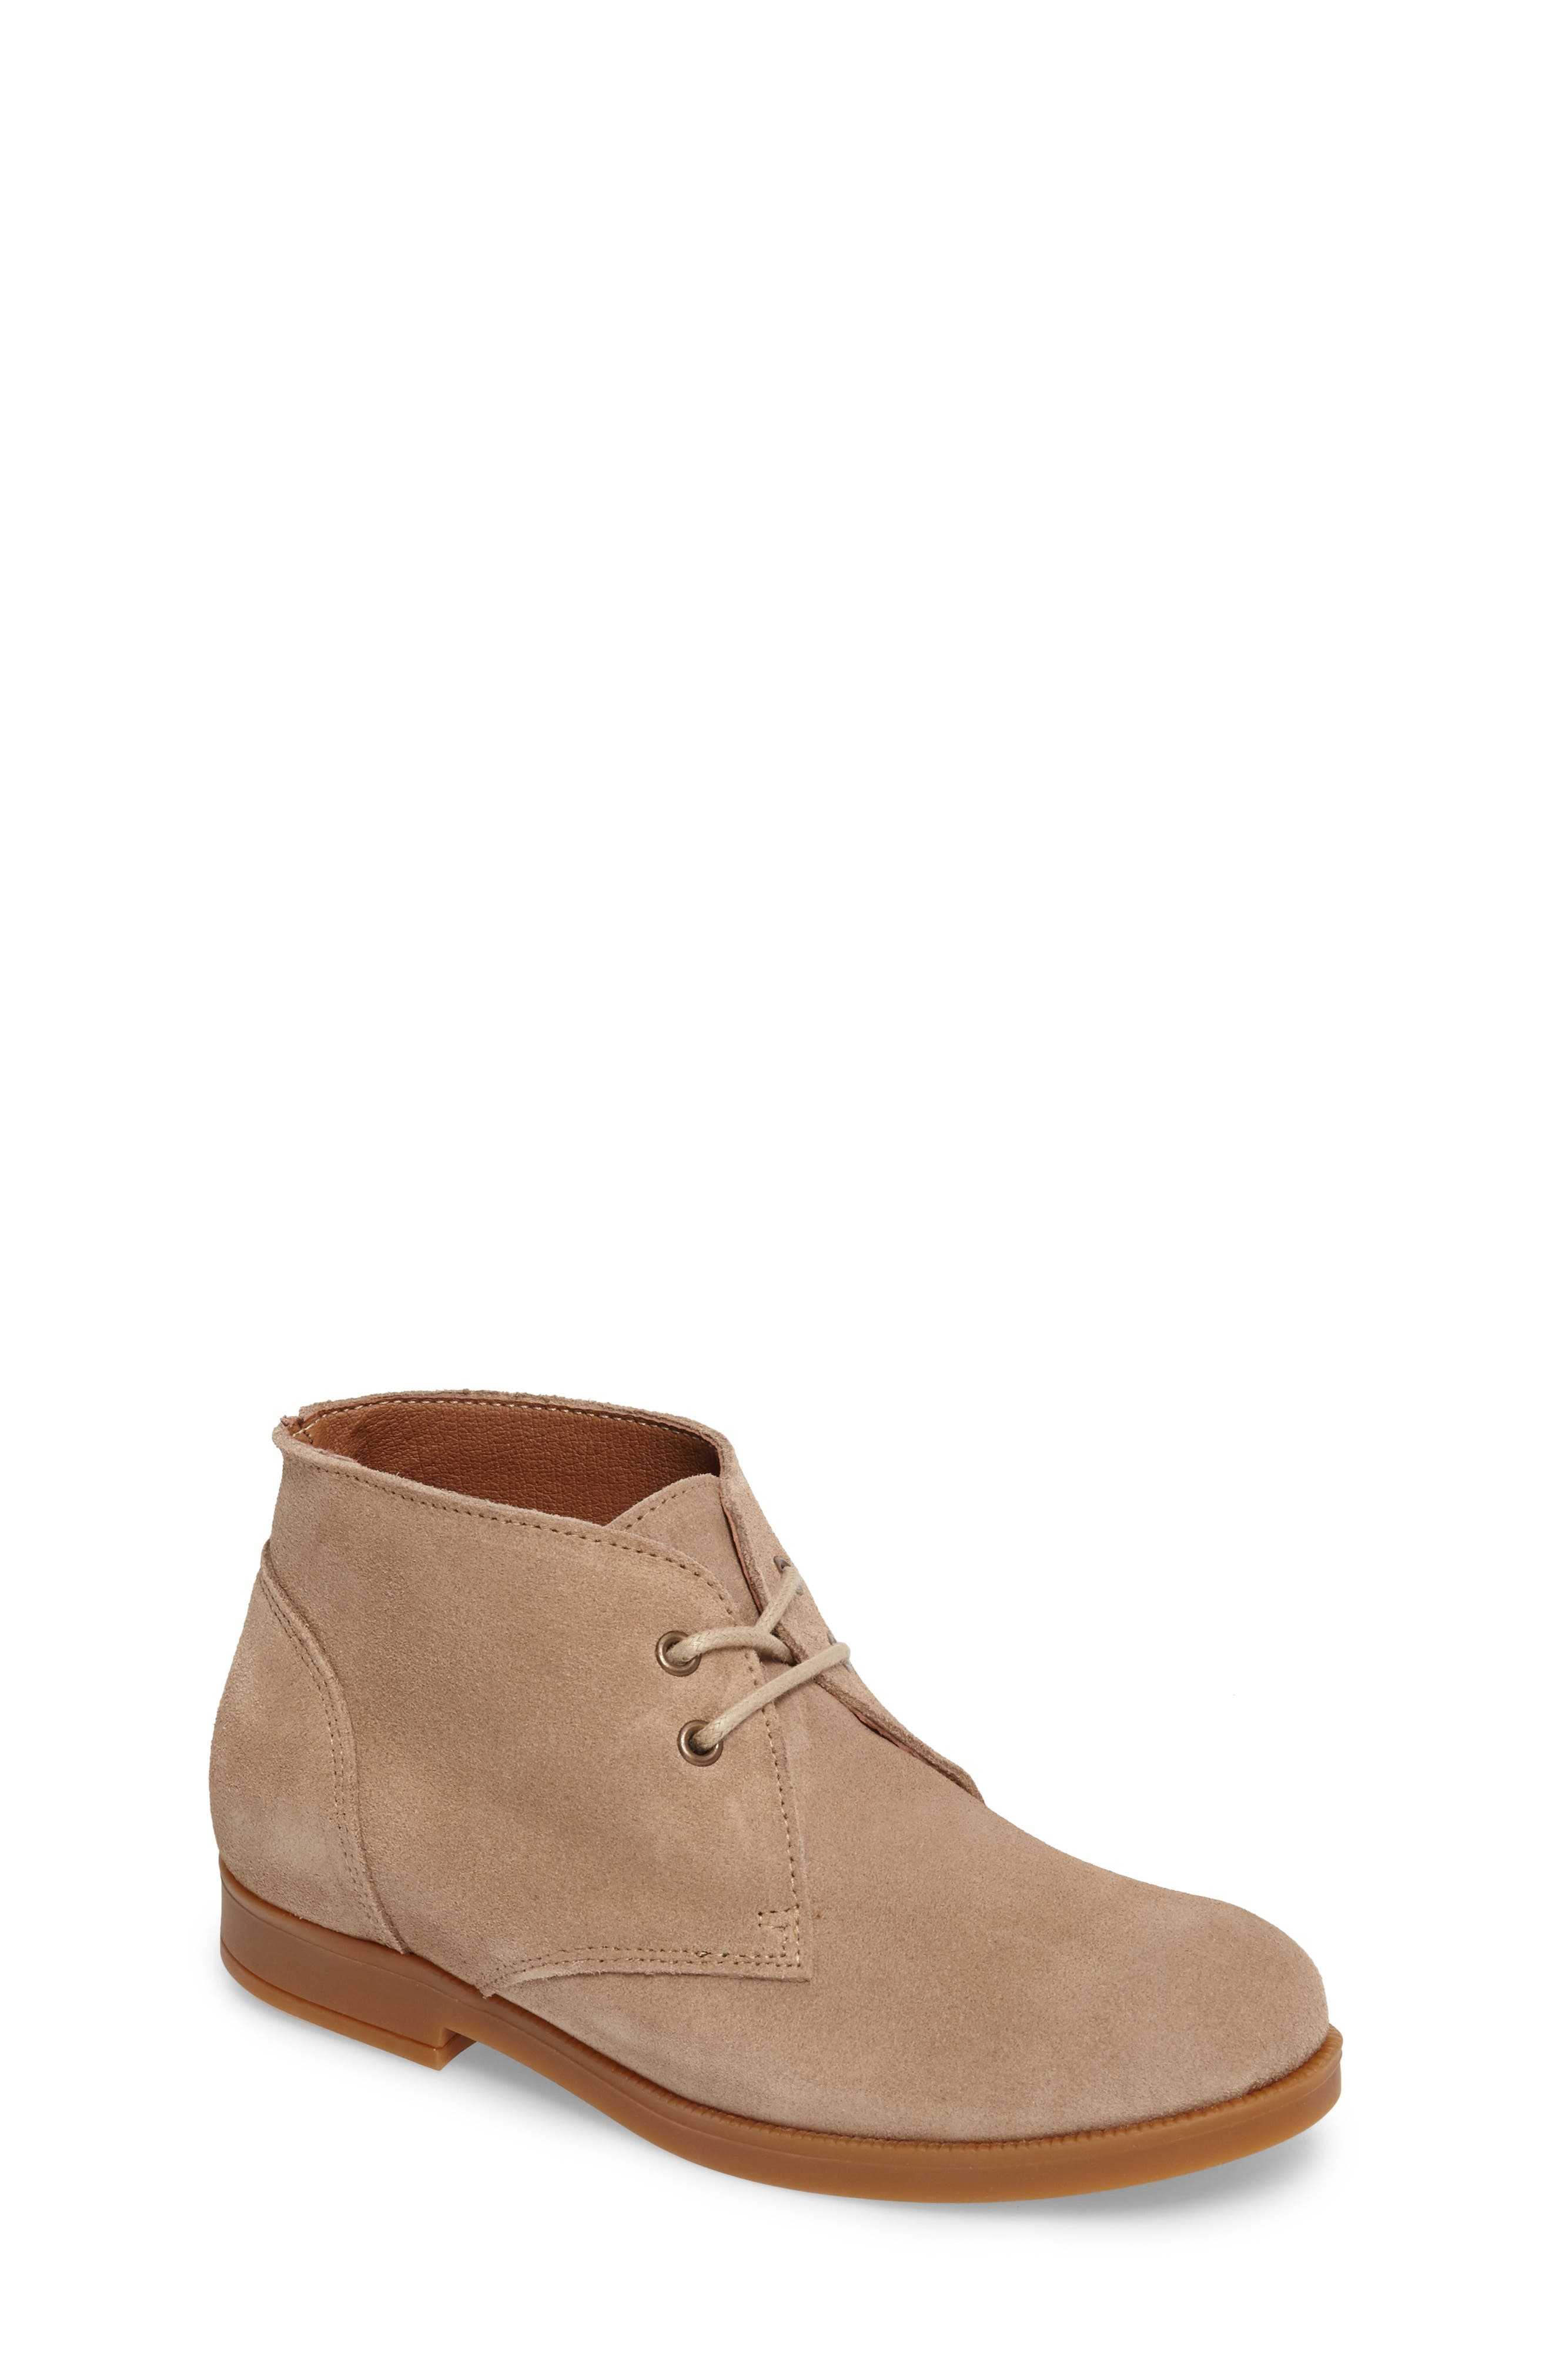 Alternate Image 1 Selected - Vince Camuto Kamin Chukka Boot (Toddler, Little Kid & Big Kid)